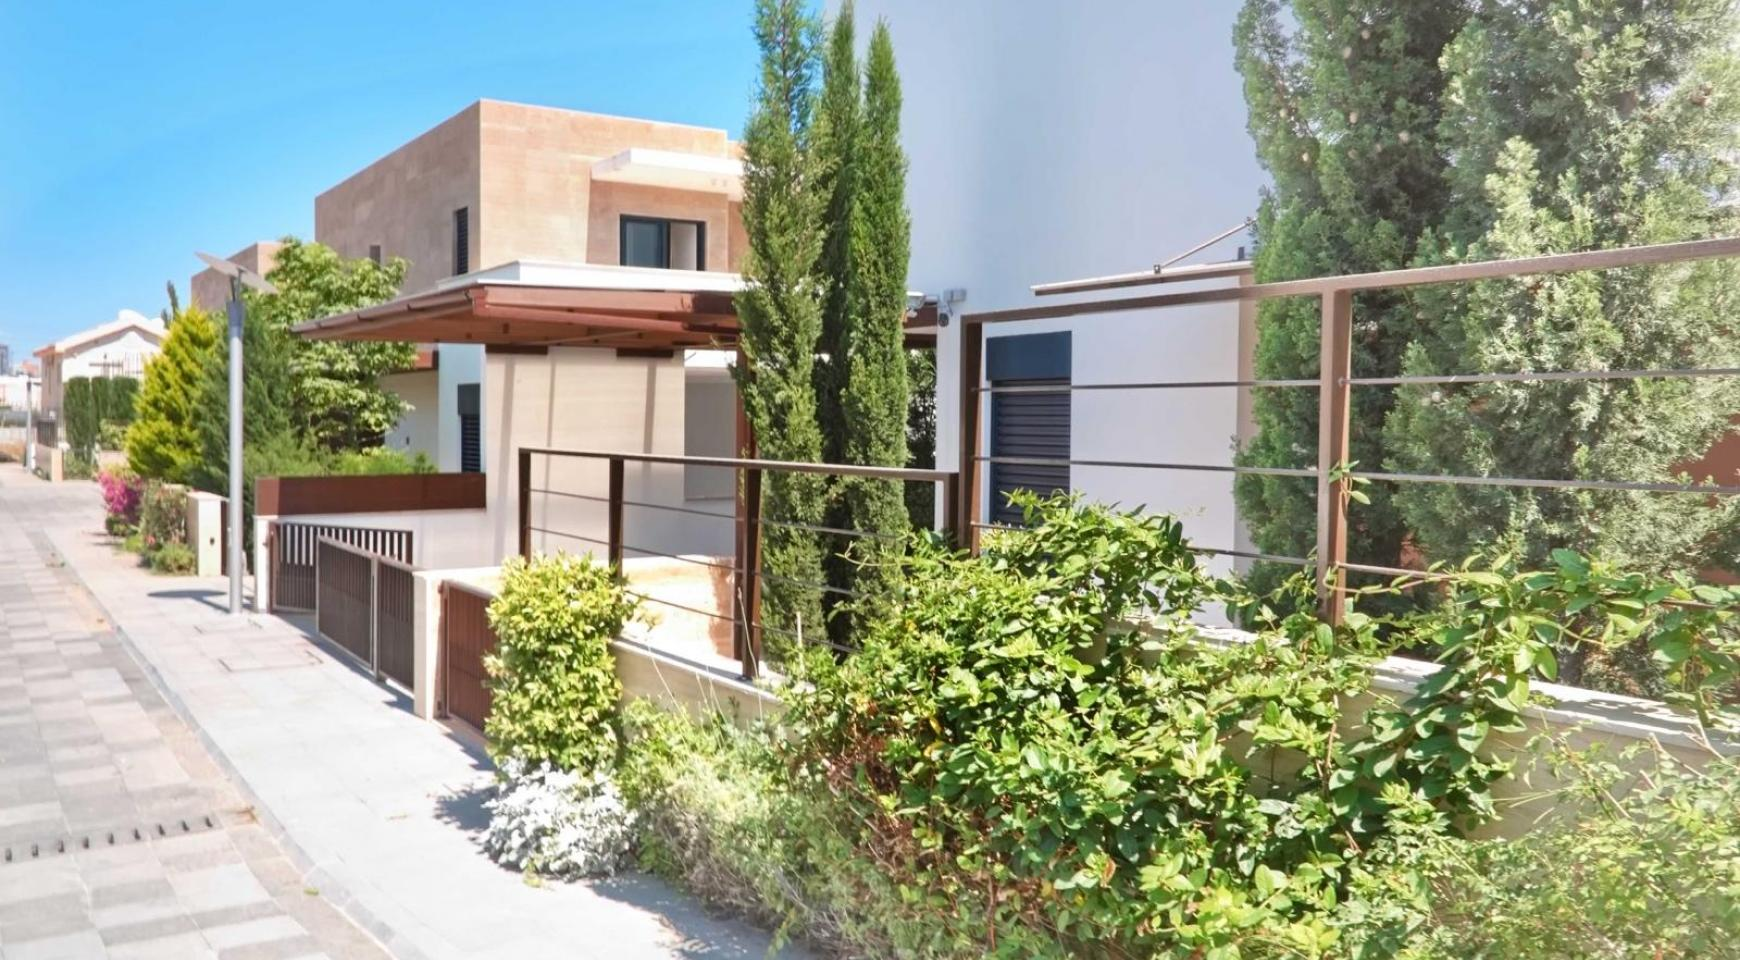 New Luxurious 3 Bedroom Villa within a Gated Project near the Sea - 4